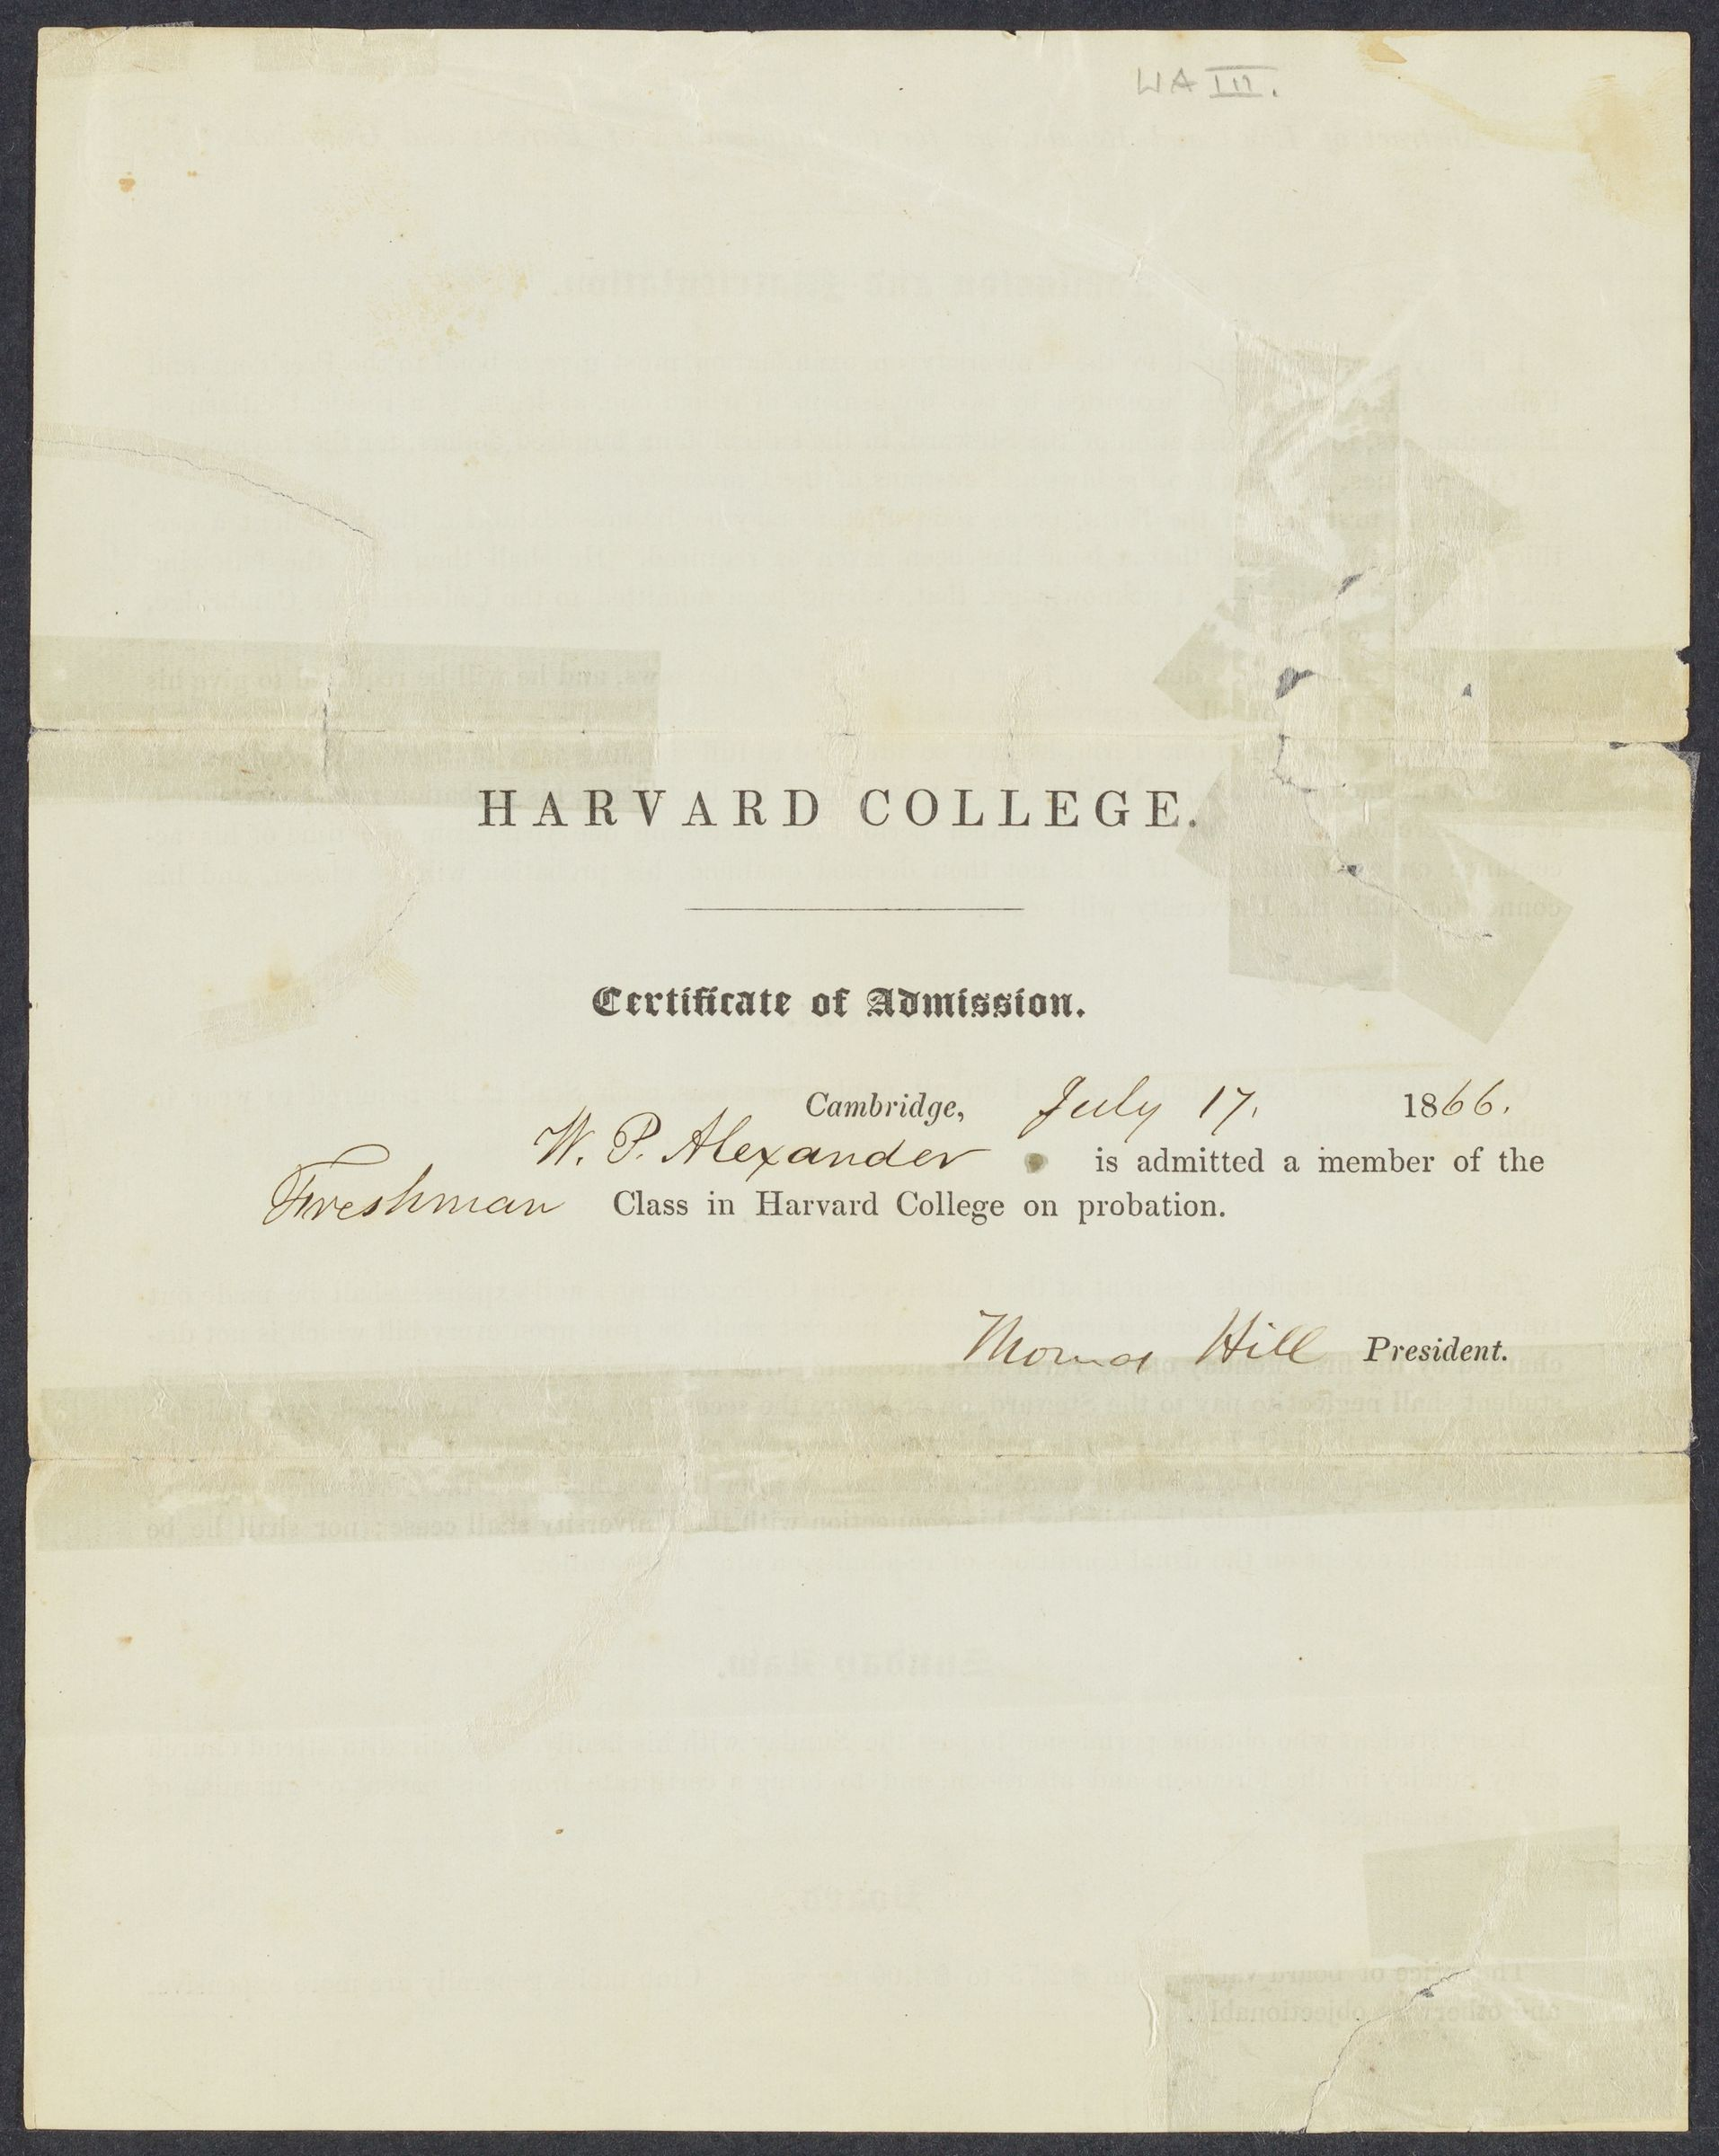 [Certificate of admission of W. P. Alexander], 1866 July 17